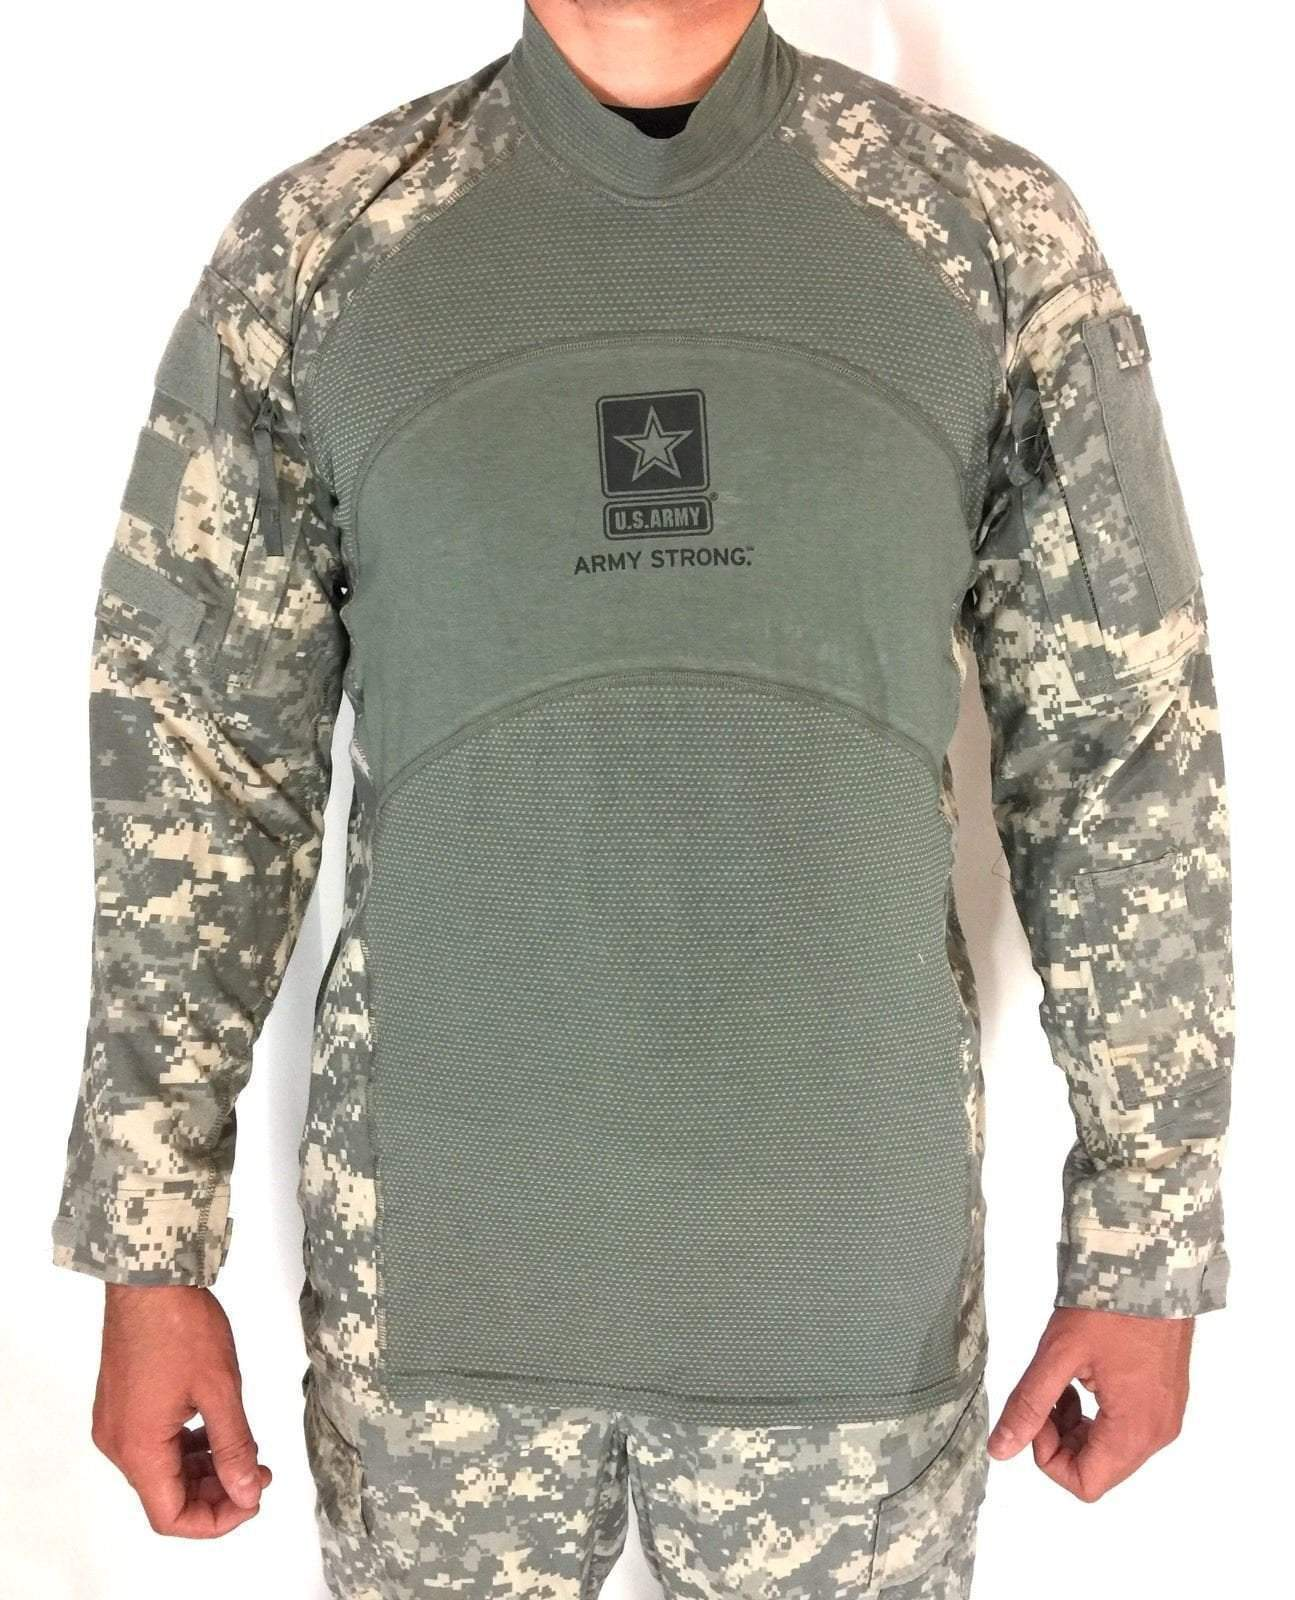 2b755e8f0022 MASSIF Army Combat Shirt with Army Strong Logo - Army Surplus Online